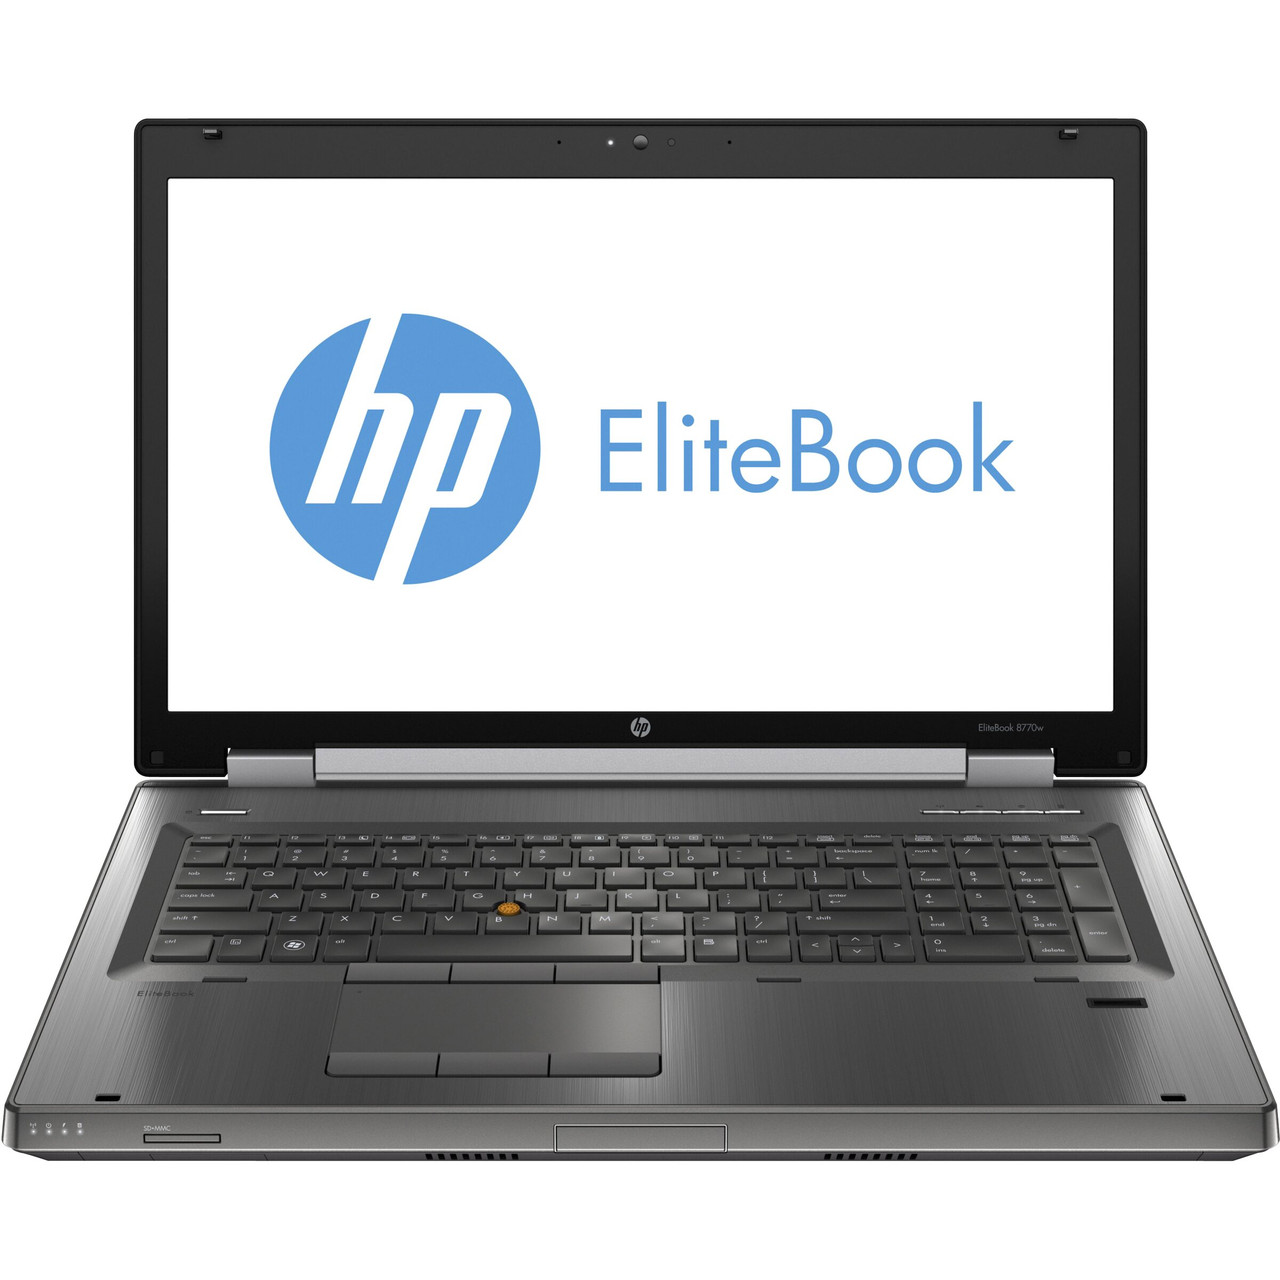 HP Compaq Elitebook 8770w Laptop Core i5 2.8GHz, 16GB Ram, 250GB SSD, DVD-RW, Windows 10 Pro 64 Notebook